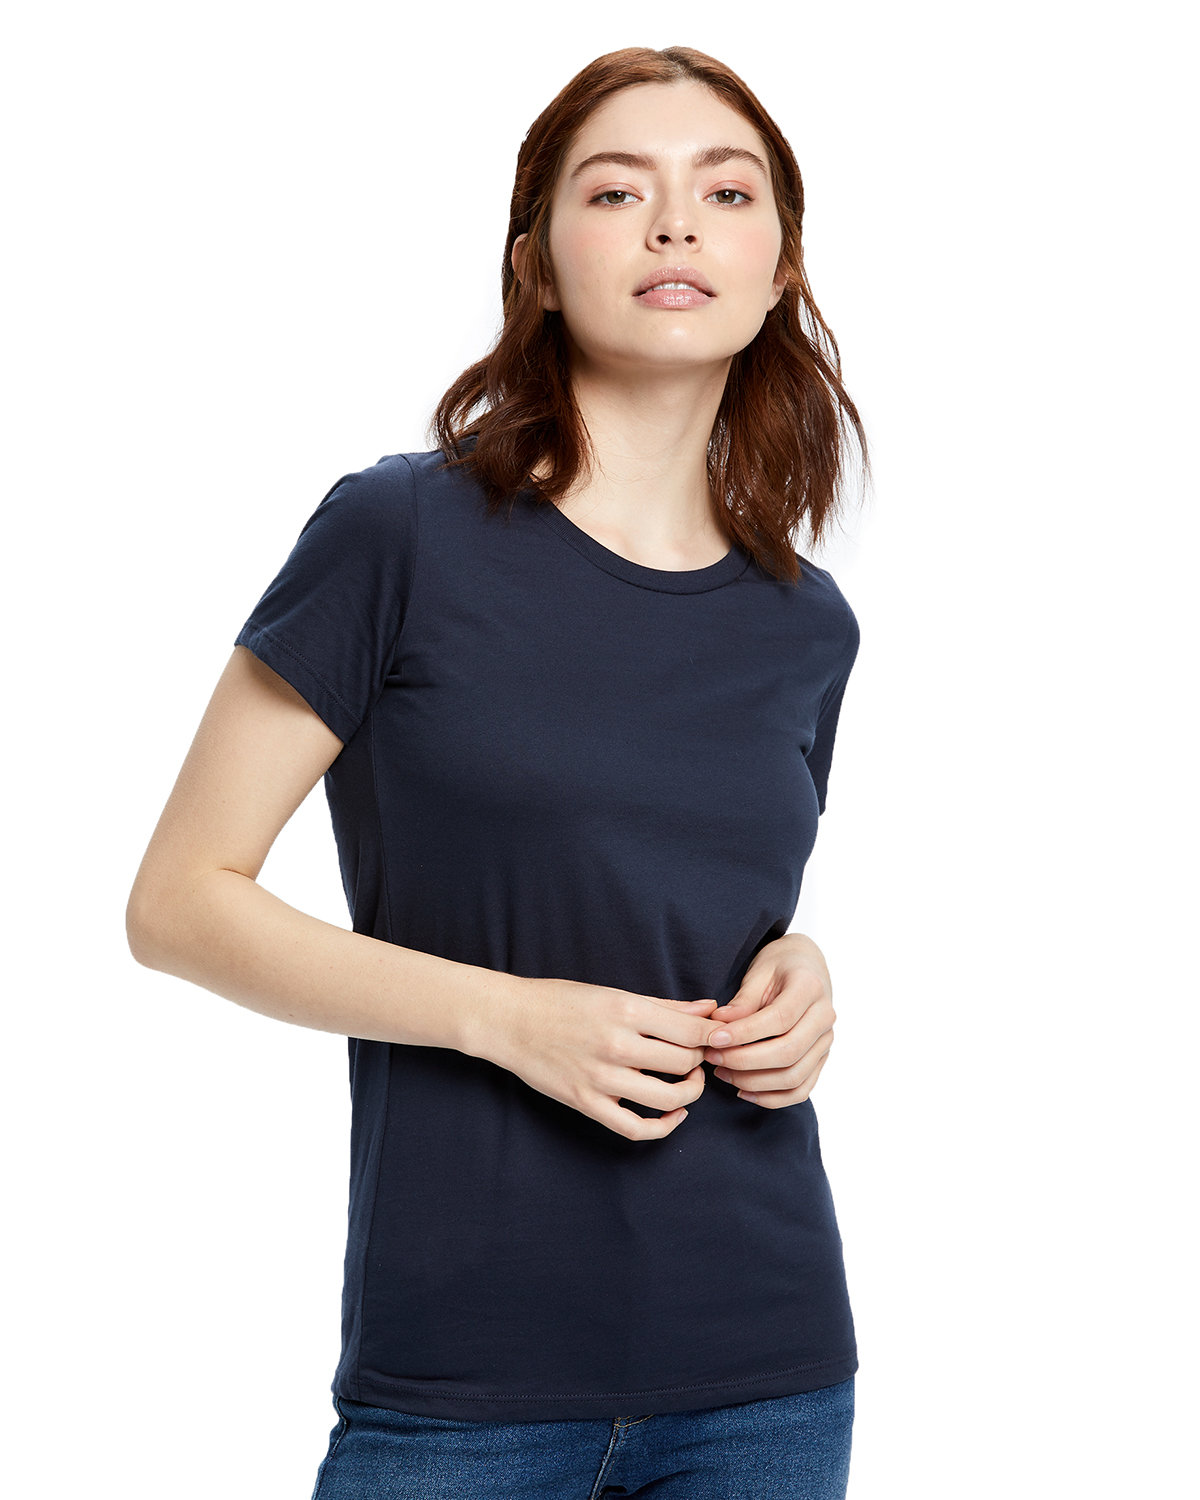 US Blanks Ladies' Made in USA Short Sleeve Crew T-Shirt NAVY BLUE